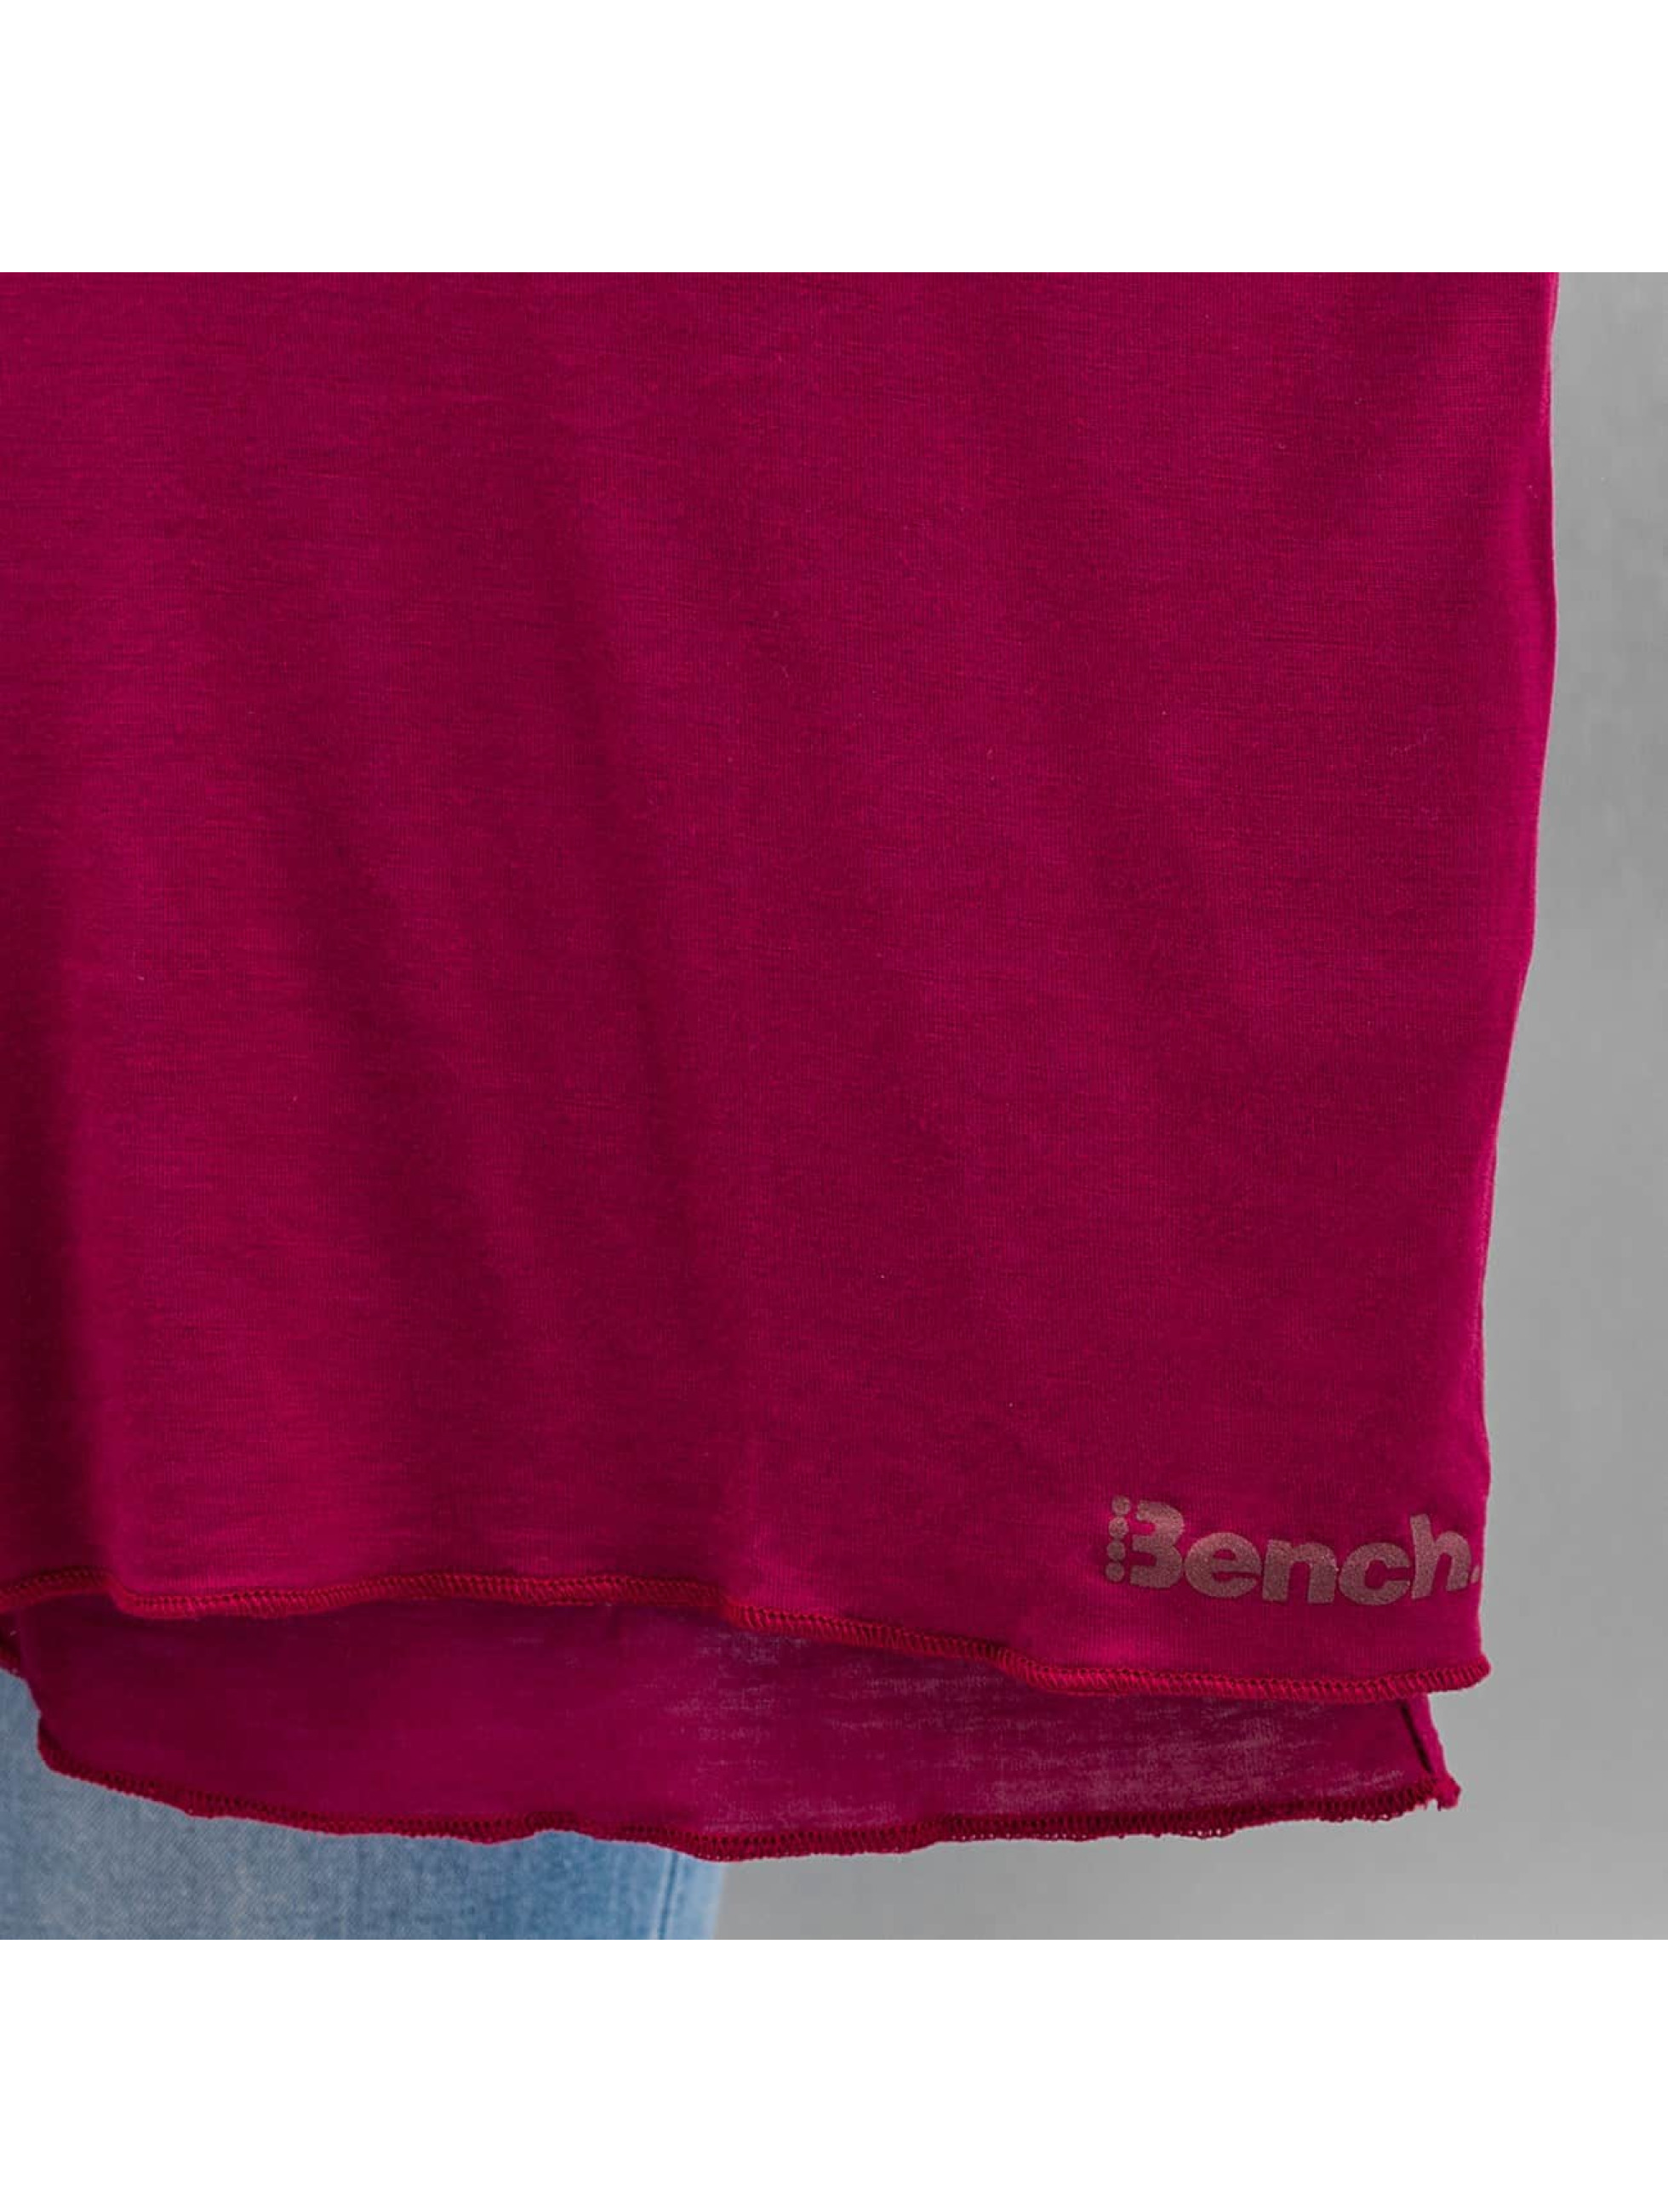 Bench Longsleeve Performance Addendum Oversize rot